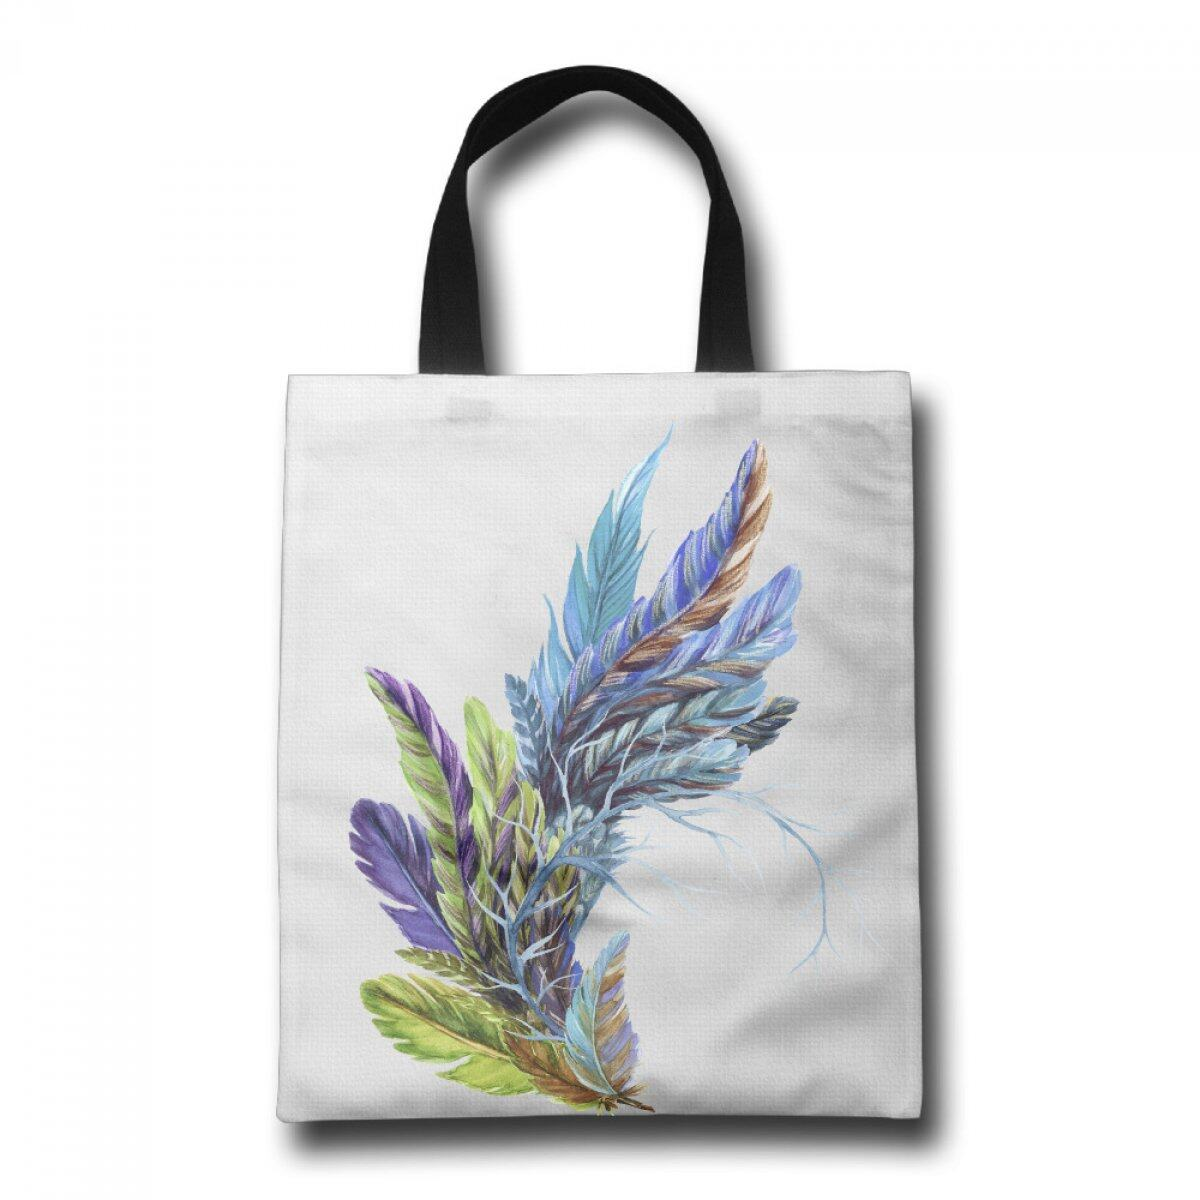 PhoRock Women Canvas Beach Tote Colorful Feathers Printed Tote Bag GWHD002 0